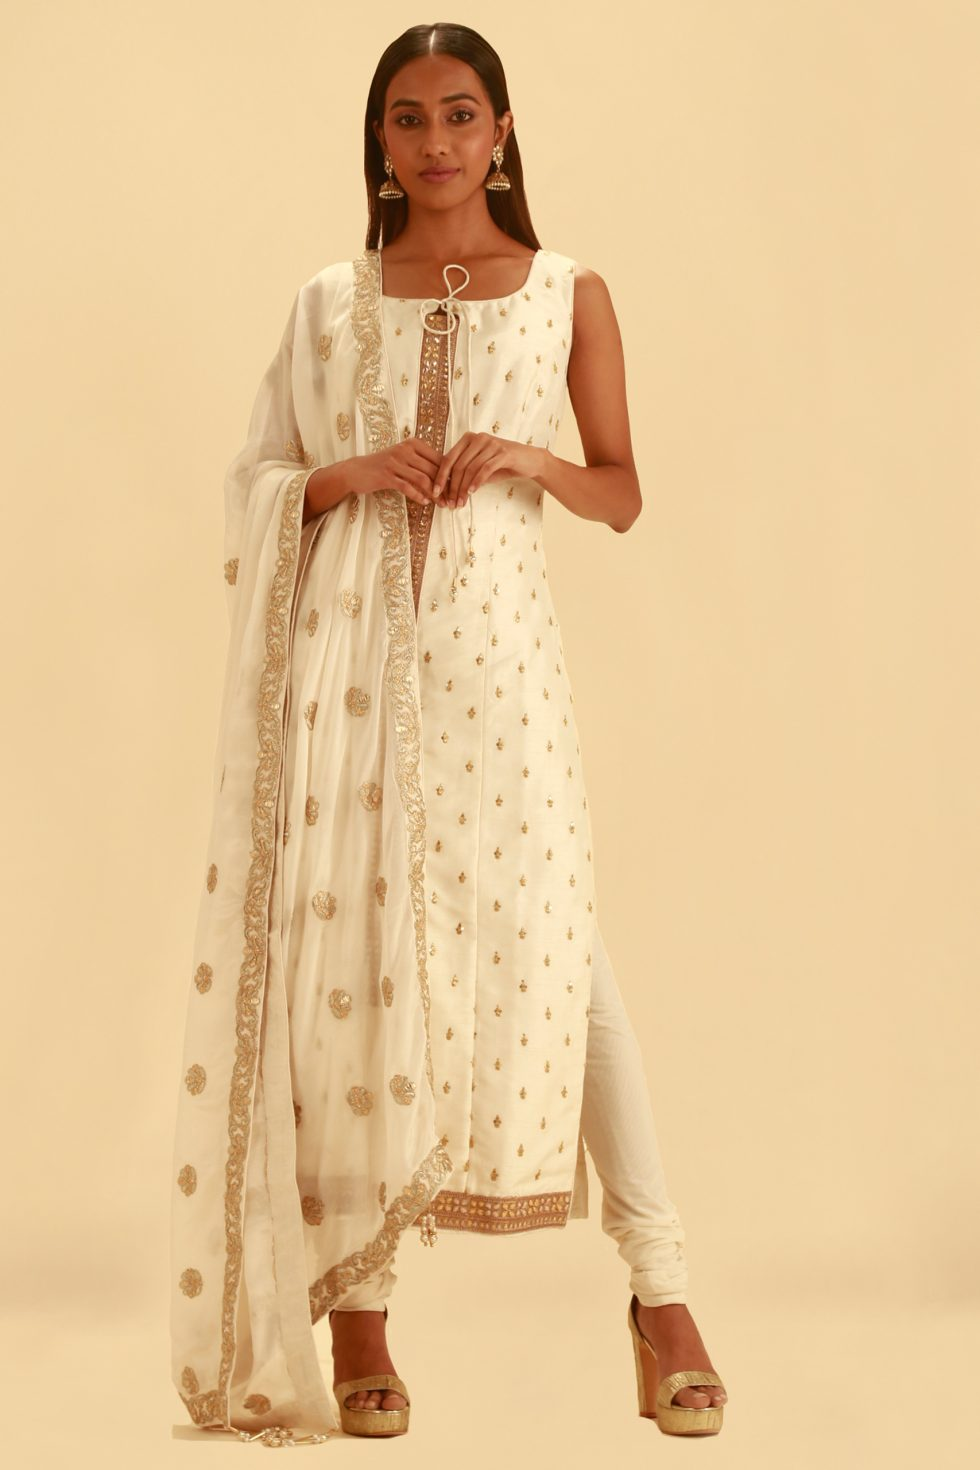 Straight Cut White Churidar Set with Gold Embellishments and Matching Dupatta